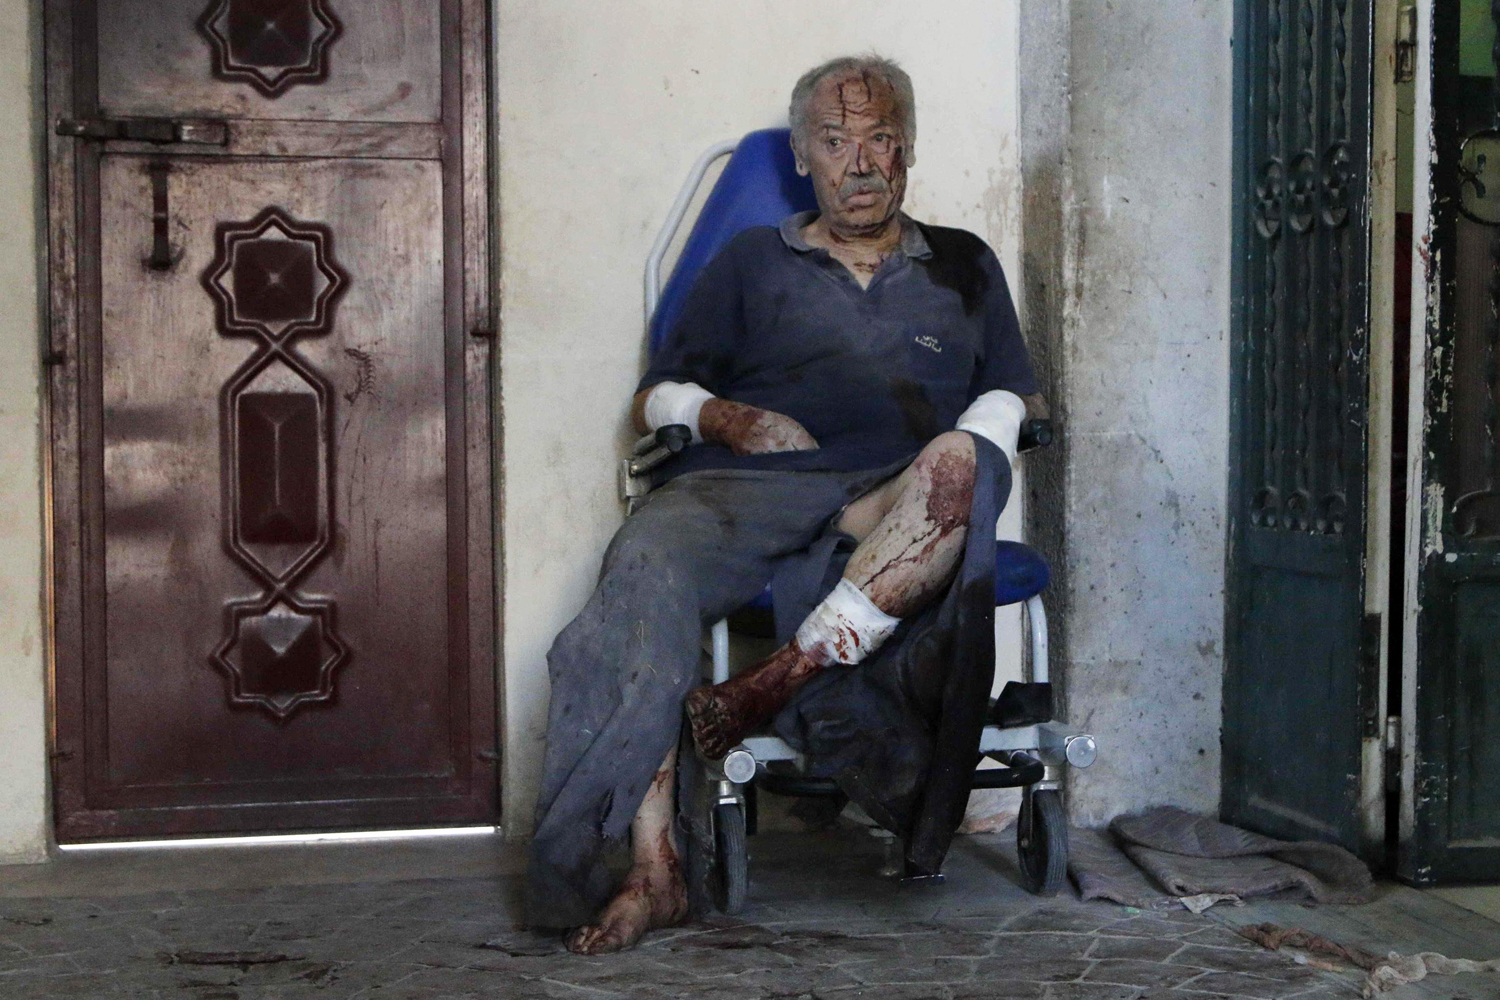 May 1, 2014. An injured man waits for medical attention after, according to activists, two barrel bombs were thrown by forces loyal to Syria's president Bashar Al-Assad in Hullok neighbourhood of Aleppo.